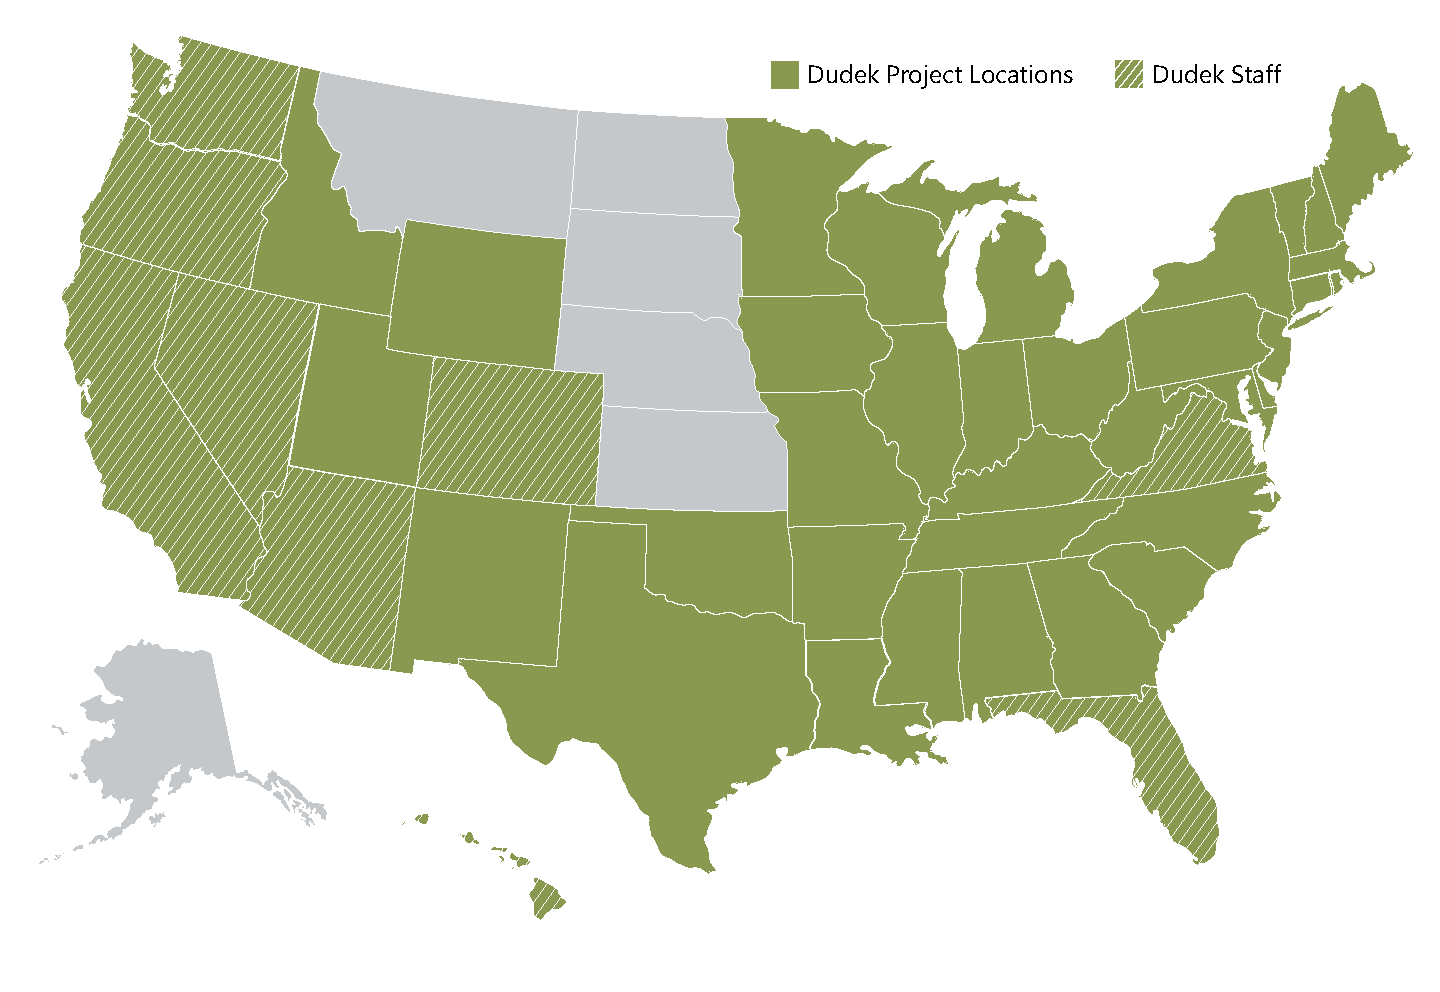 US map with all states except Montana, North and South Dakota, and Arkansas shaded green. Washington, Oregon, California, Nevada, Arizona, Colorado, Virginia, and Florida have a crosshatch overlay on top of the green shading.